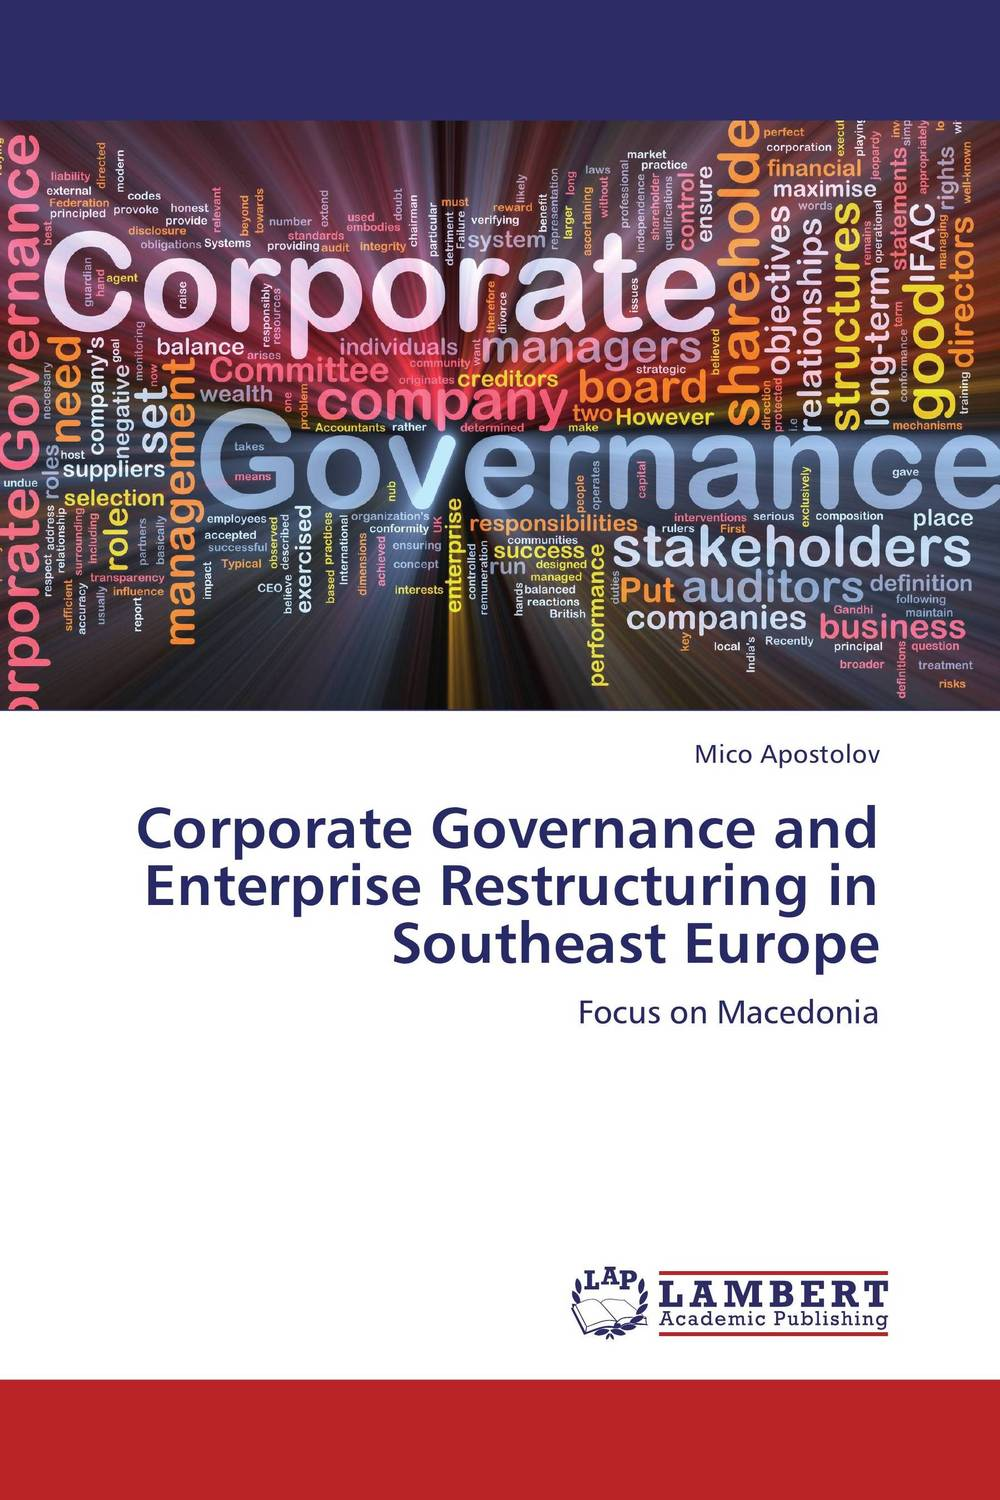 Corporate Governance and Enterprise Restructuring in Southeast Europe economic methodology